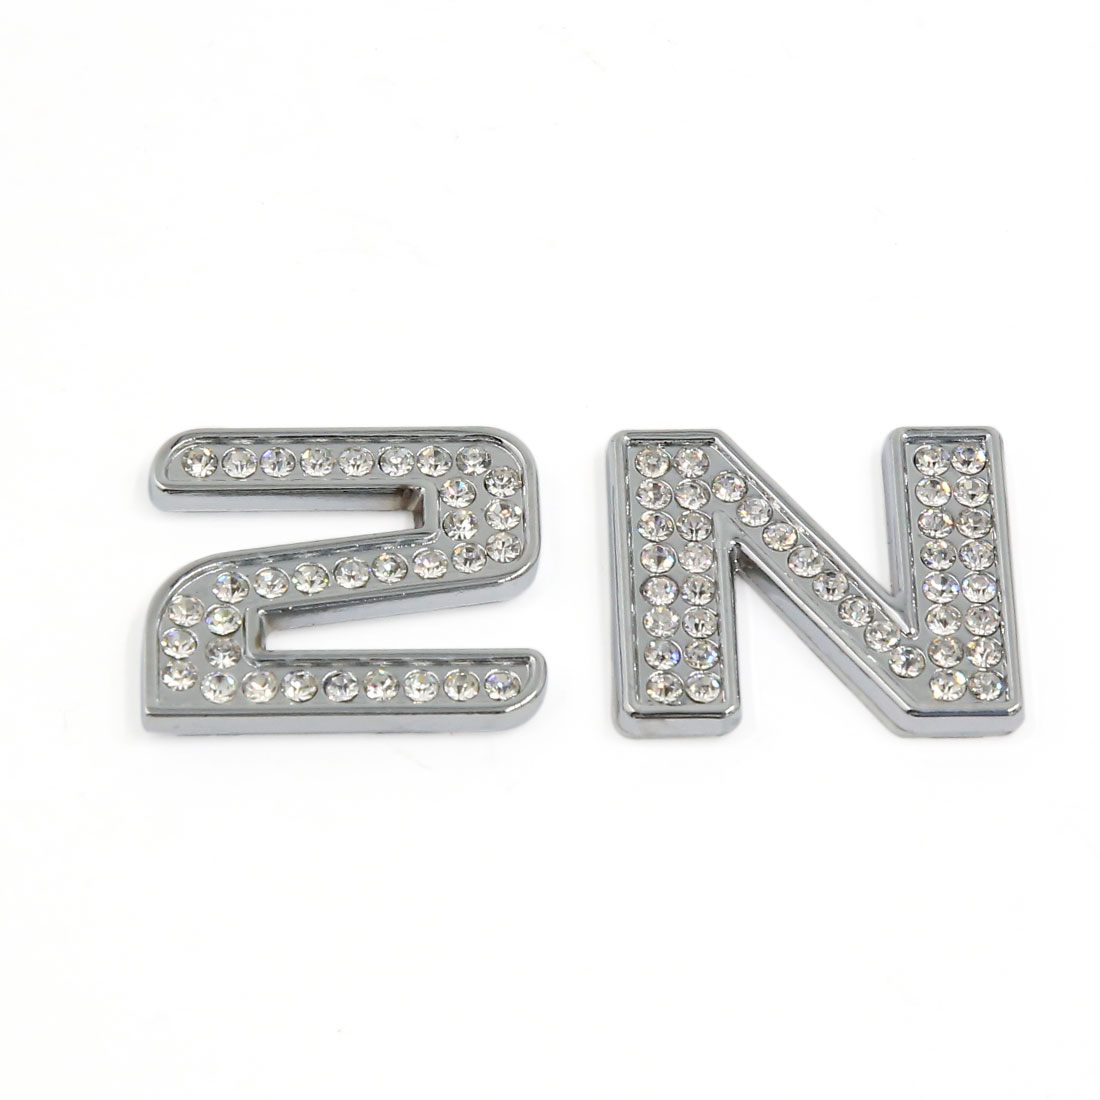 Metal Clear Faux Rhinestone Decor N2 Design 3D Stickers Emblem Decals for Car Motorcycle